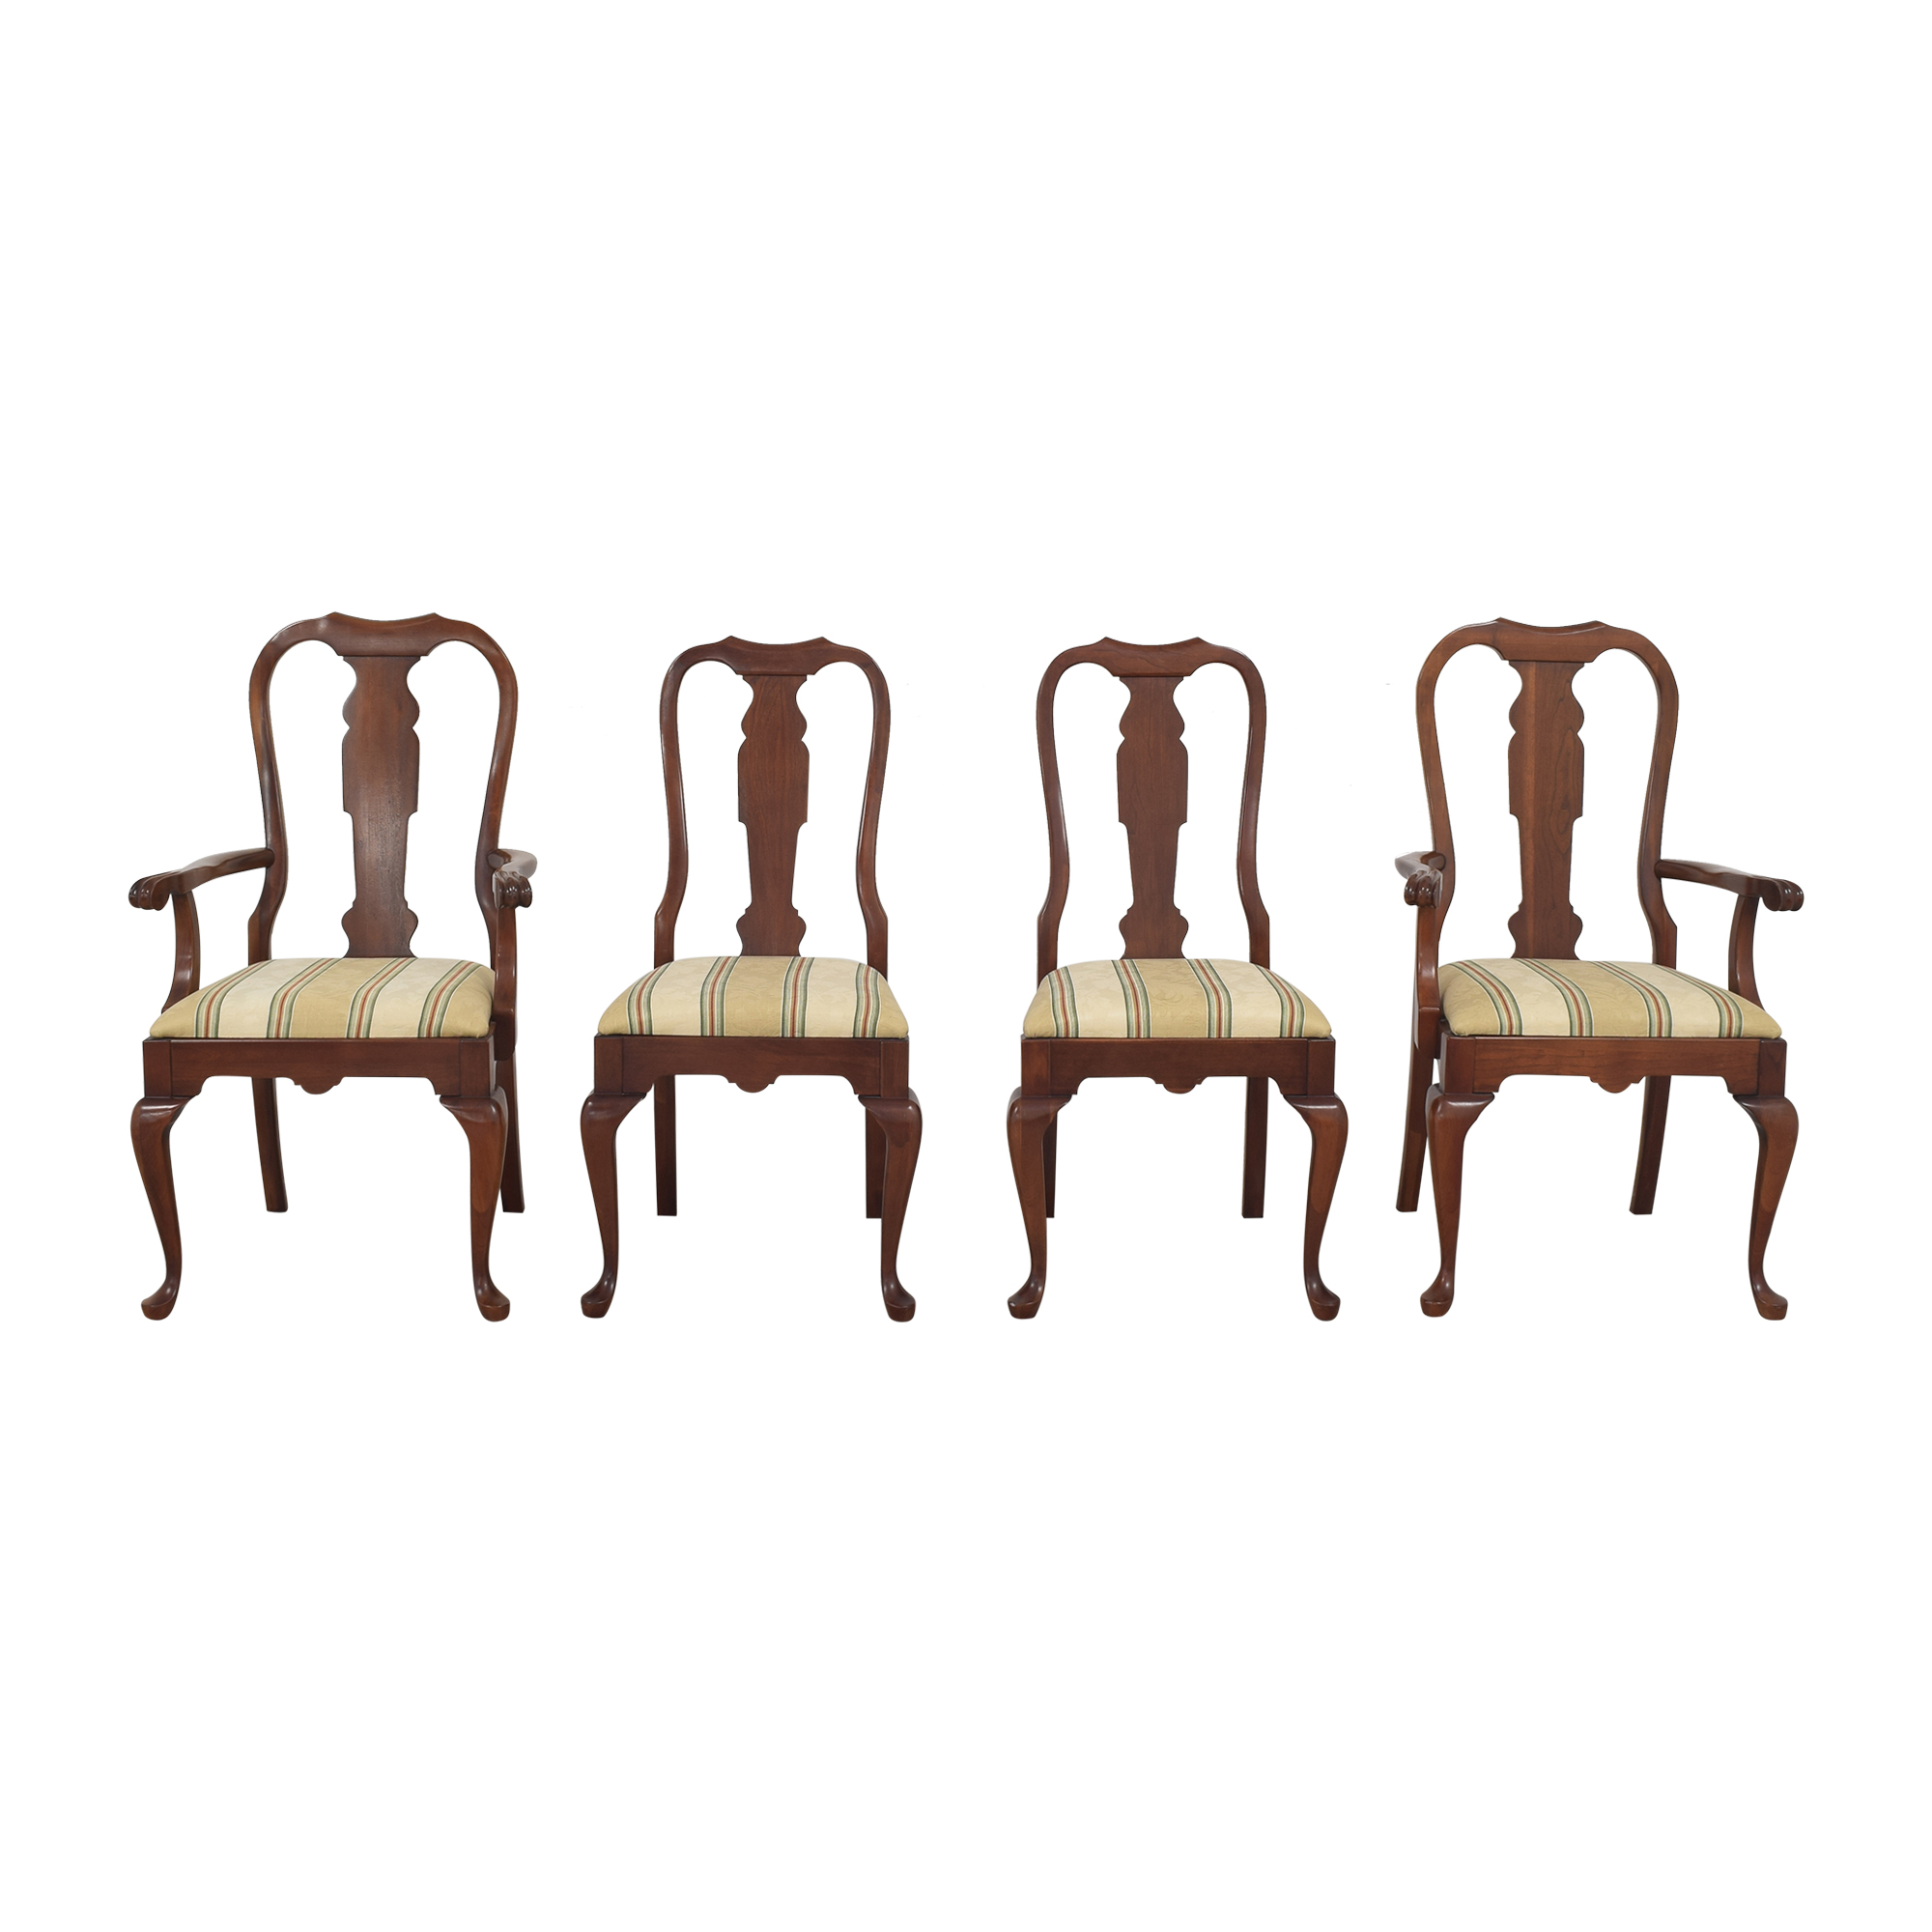 Pennsylvania House Pennsylvania House Stripe Dining Chairs Dining Chairs